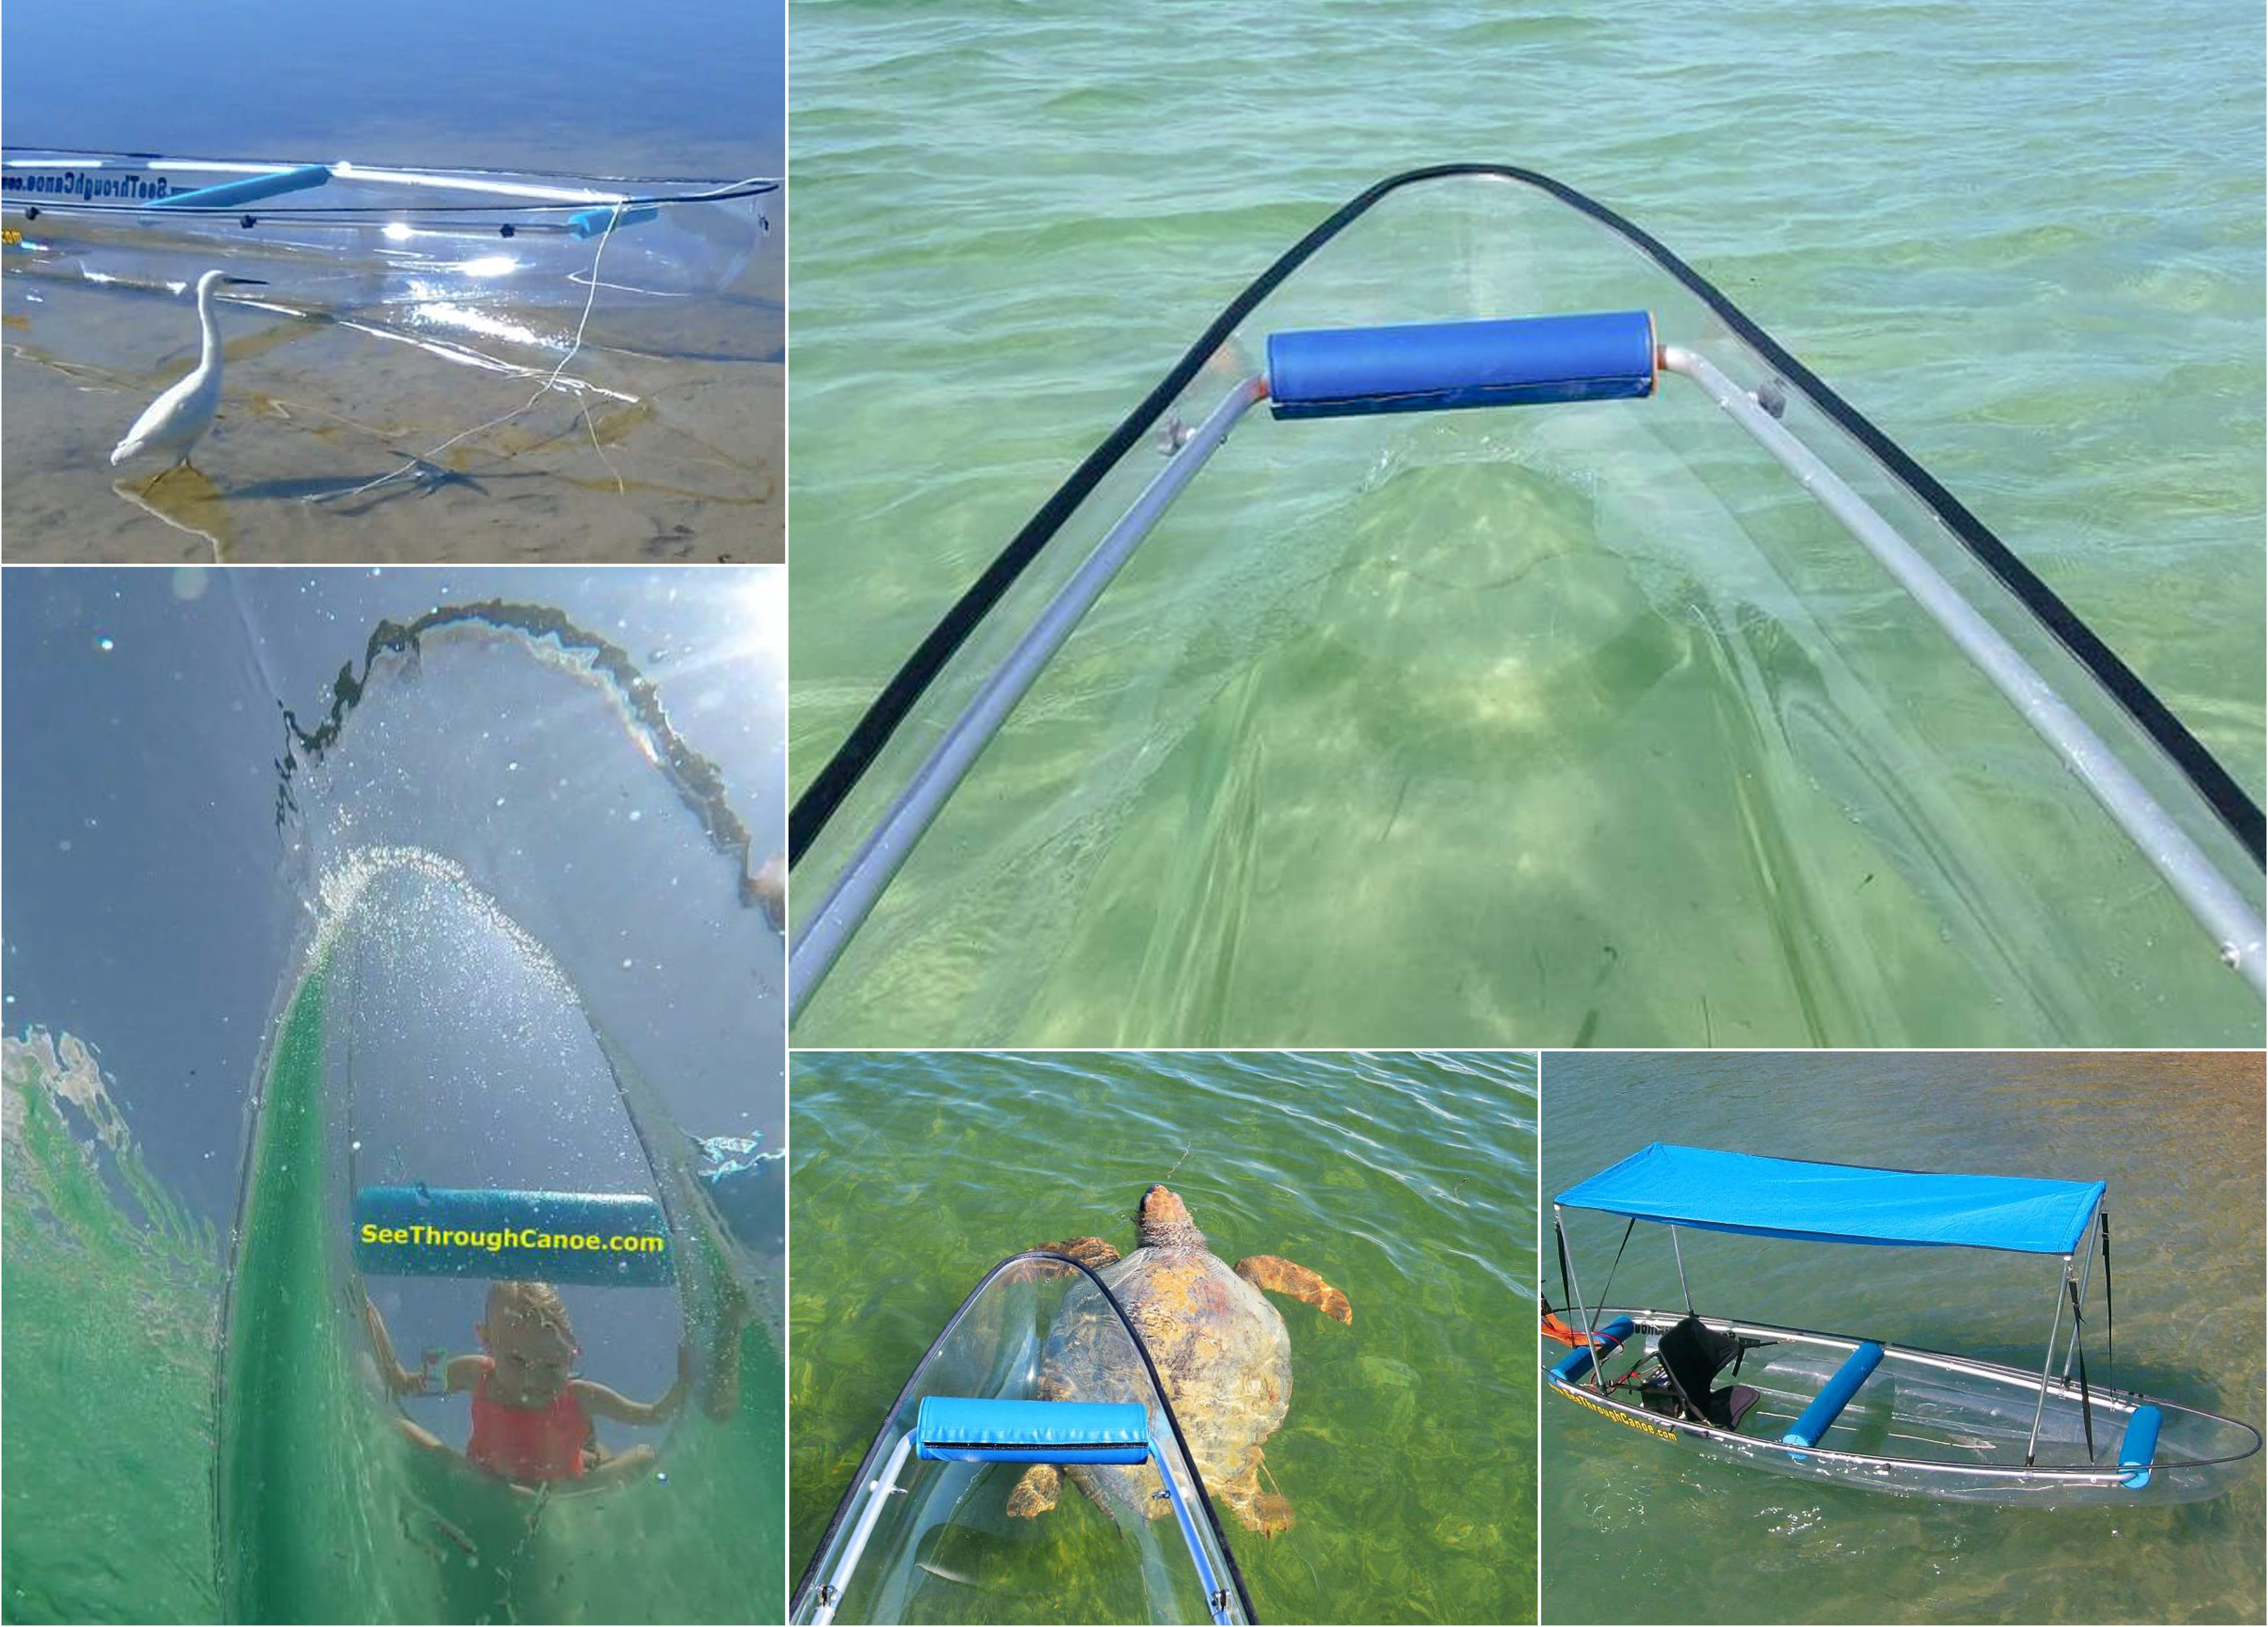 See Through Canoes